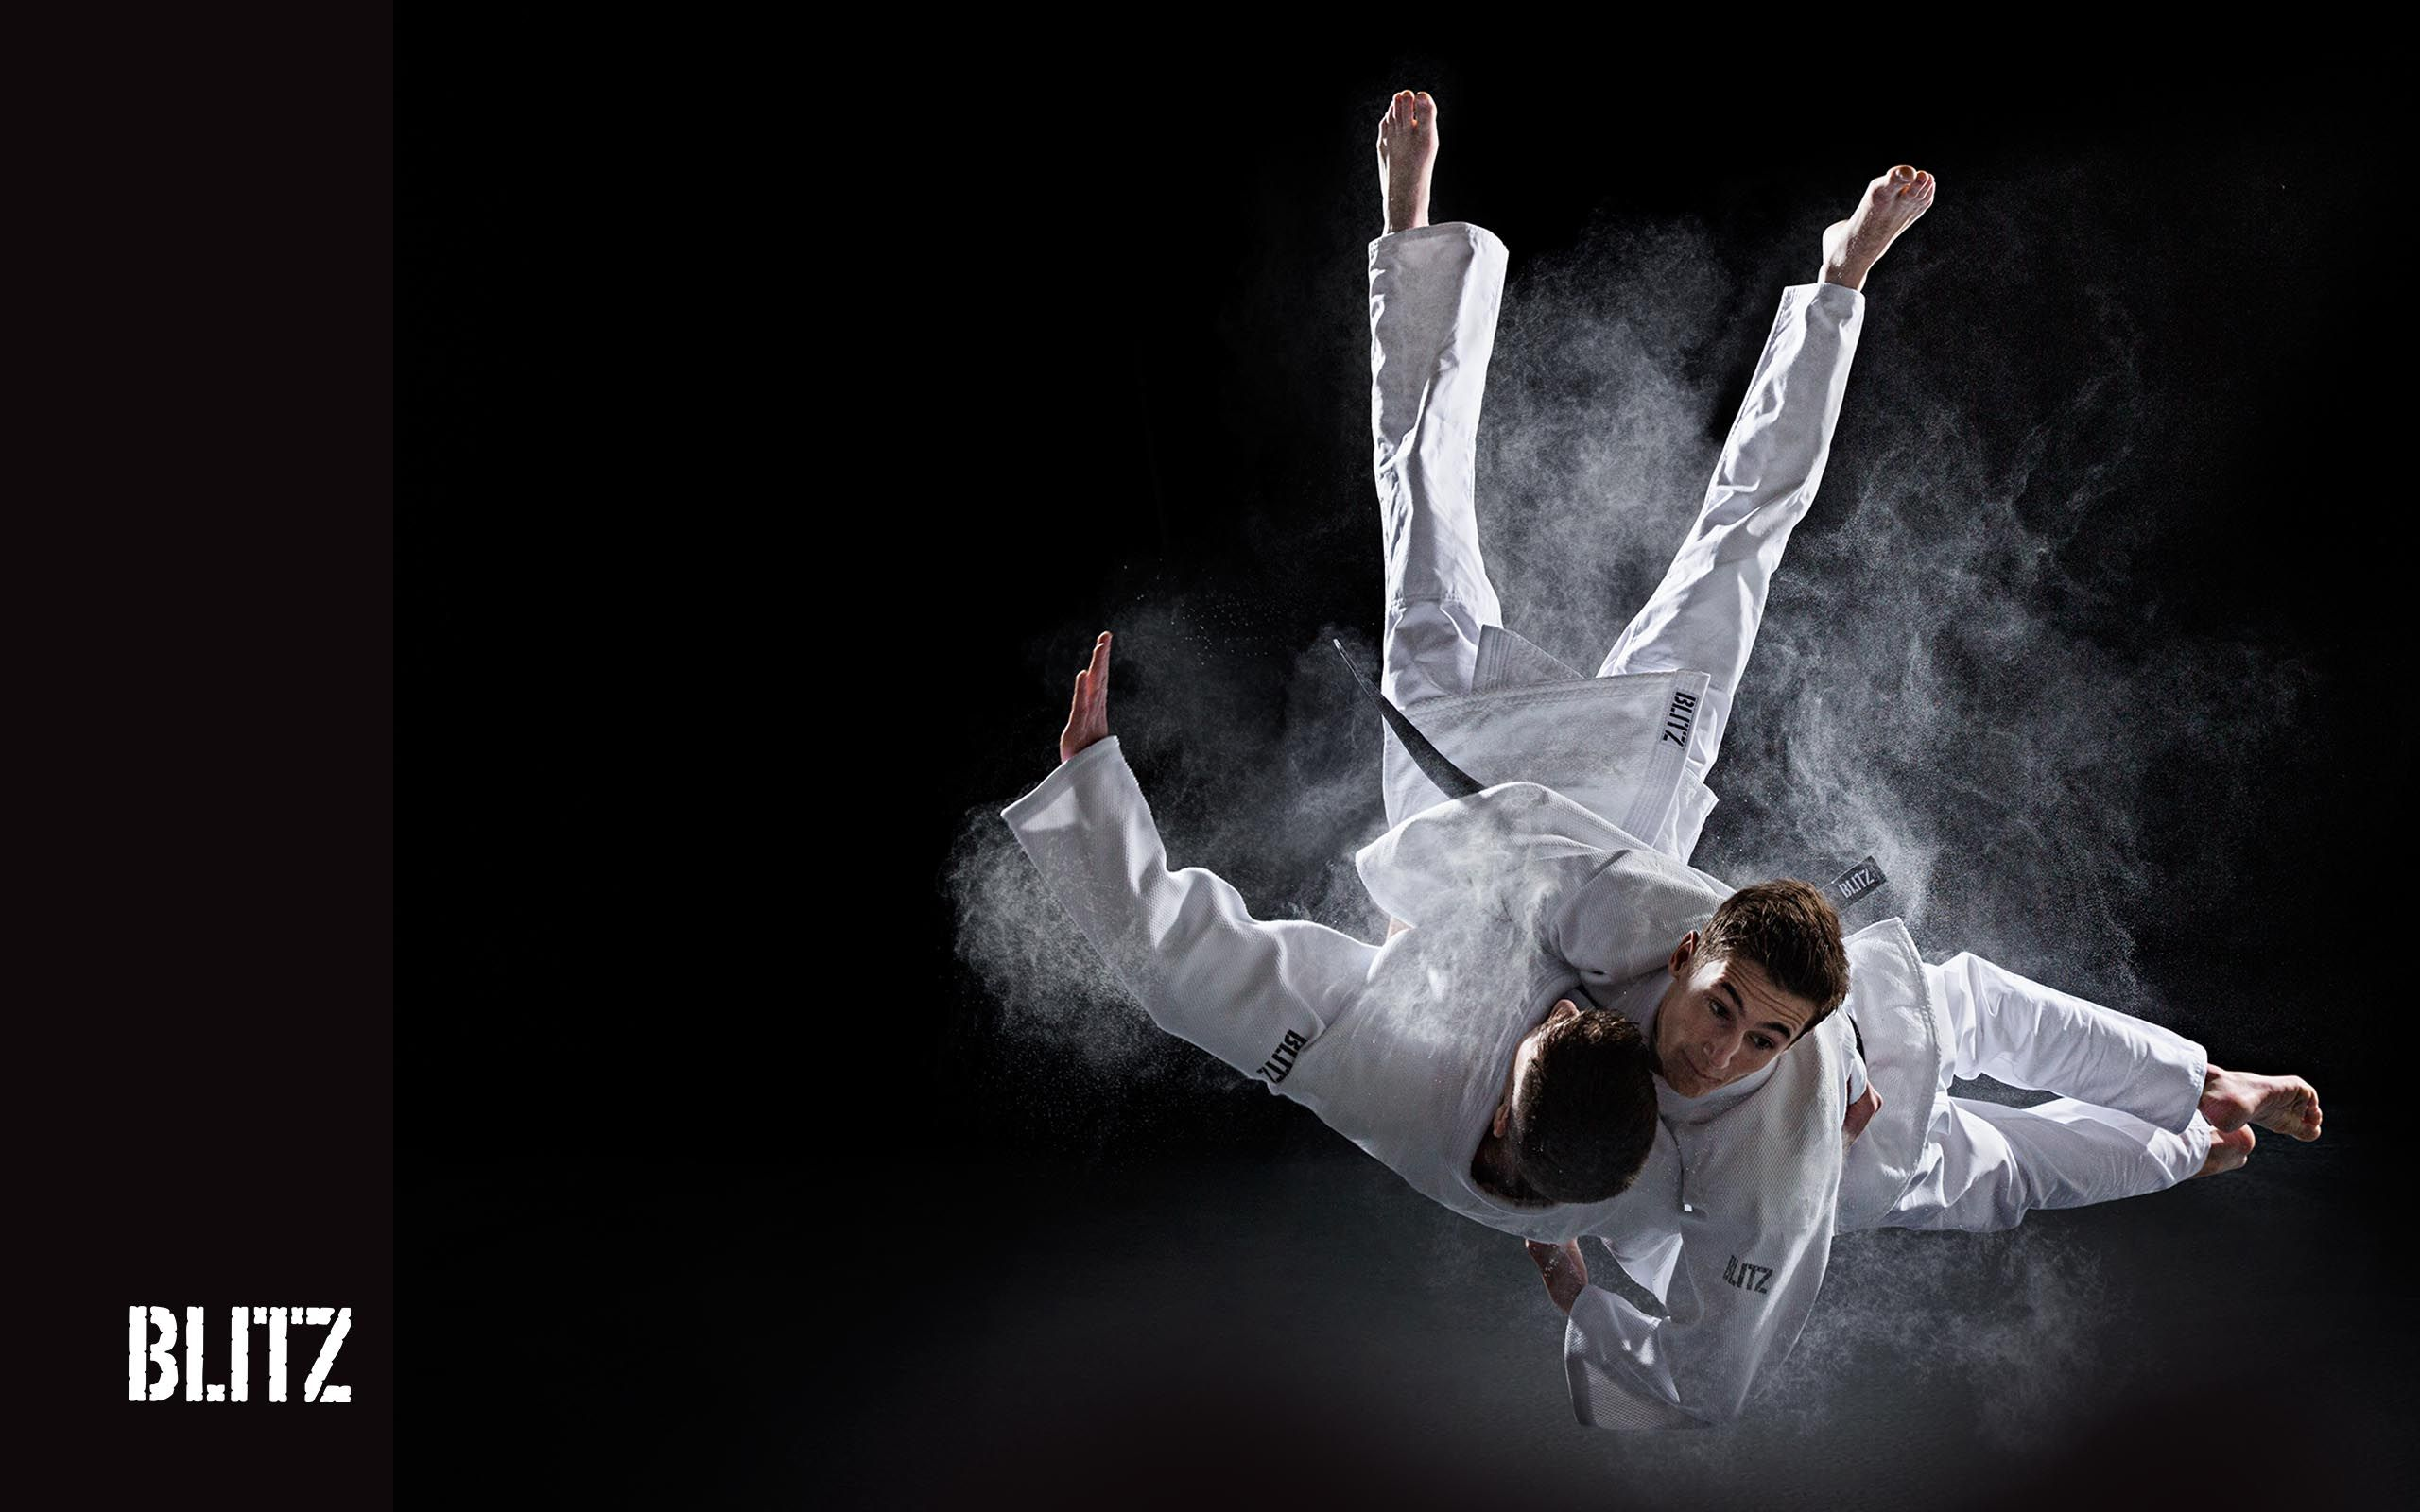 2560x1600 Judo Wallpaper - WallpaperSafari | Android | Pinterest | Judo and ...